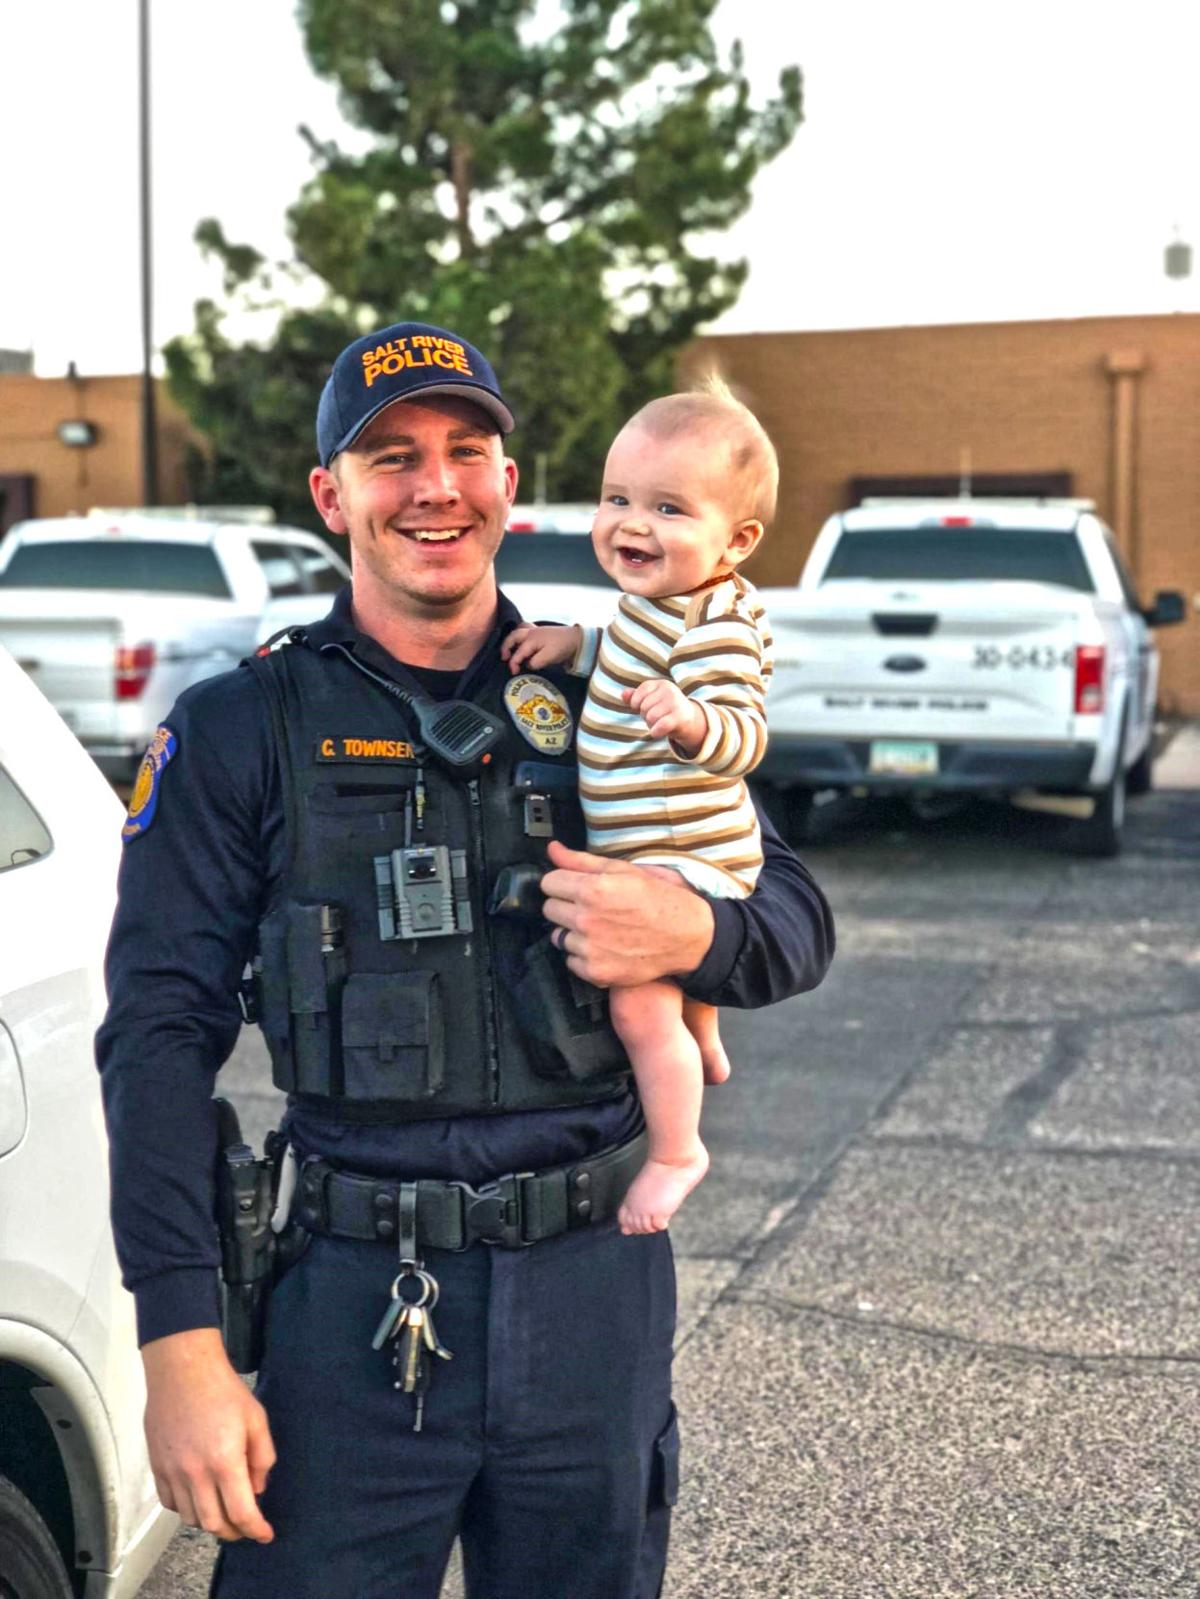 L101 MCDOWELL OFFICER KILLED-official townsend photo.jpg